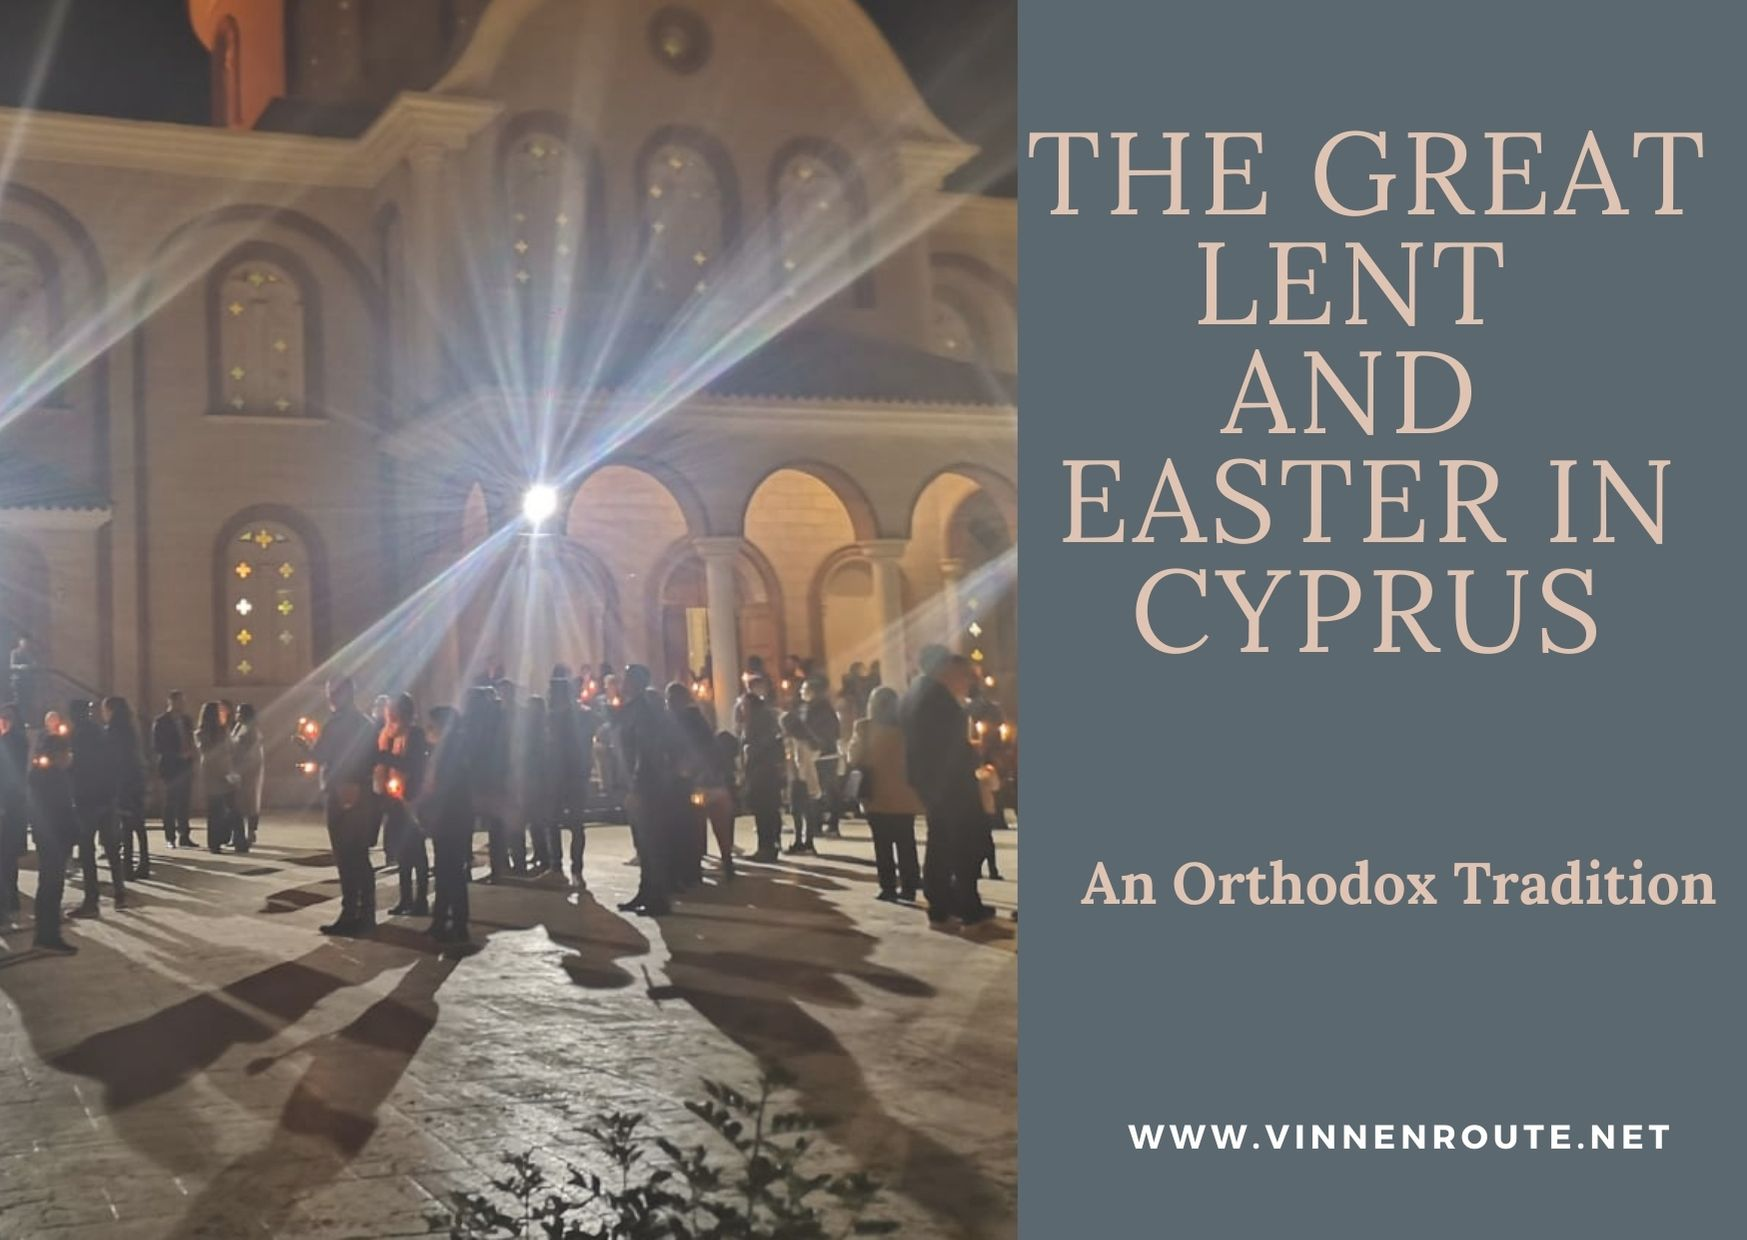 The Great lent and Easter in Cyprus cover